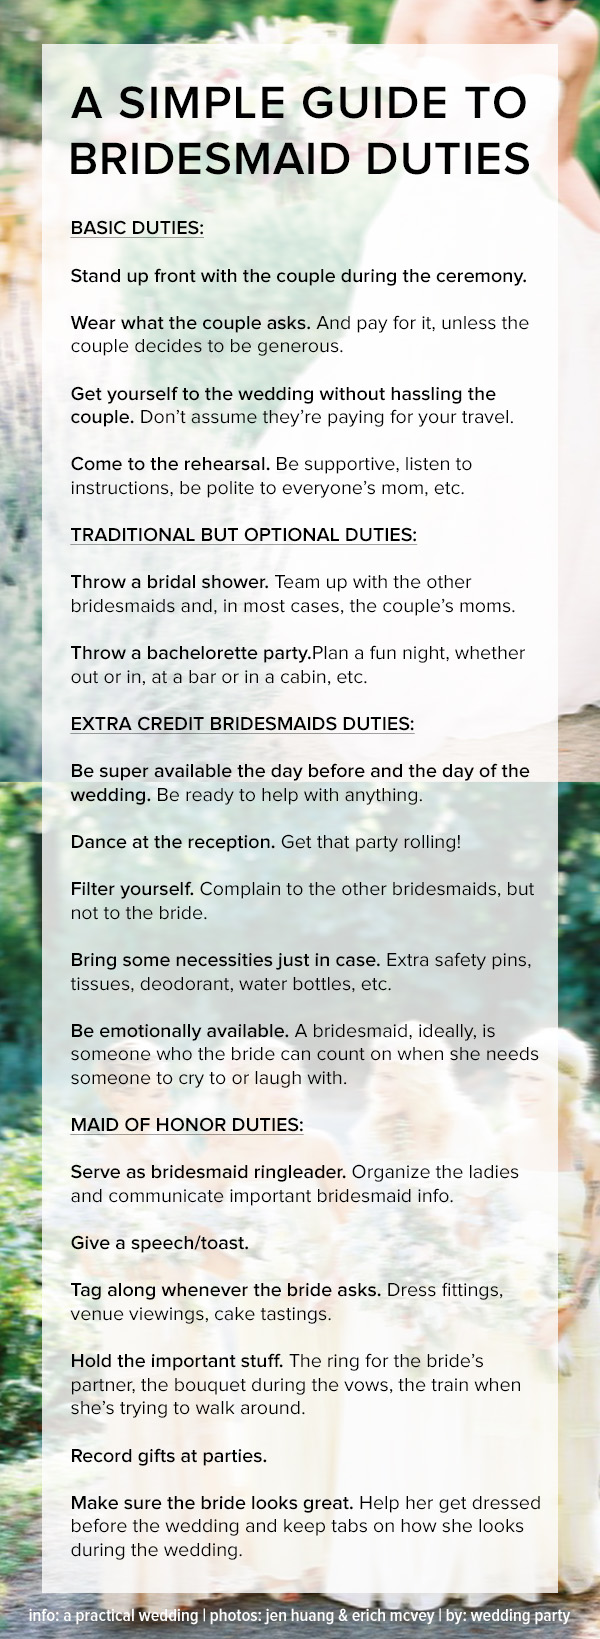 guide to bridesmaids duties etiquette infographic